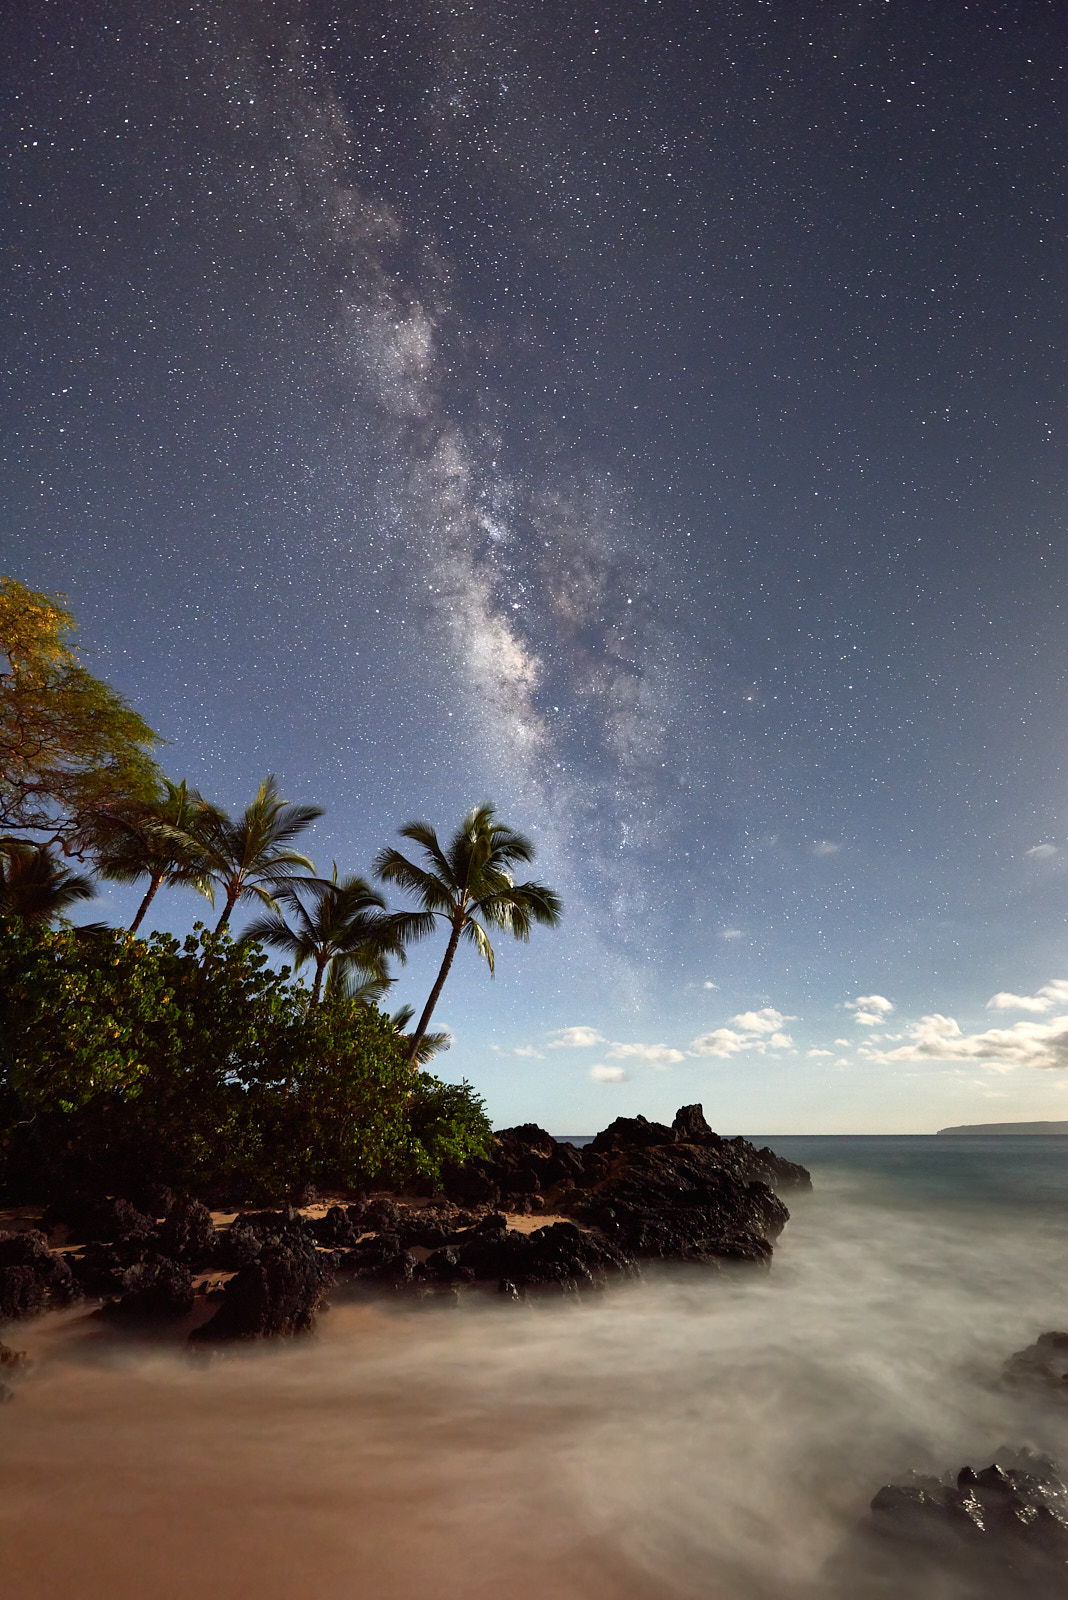 There are few things as epic as the milky way galaxy rising and seeing this with your own eyes!  Secret Beach here on Maui is...